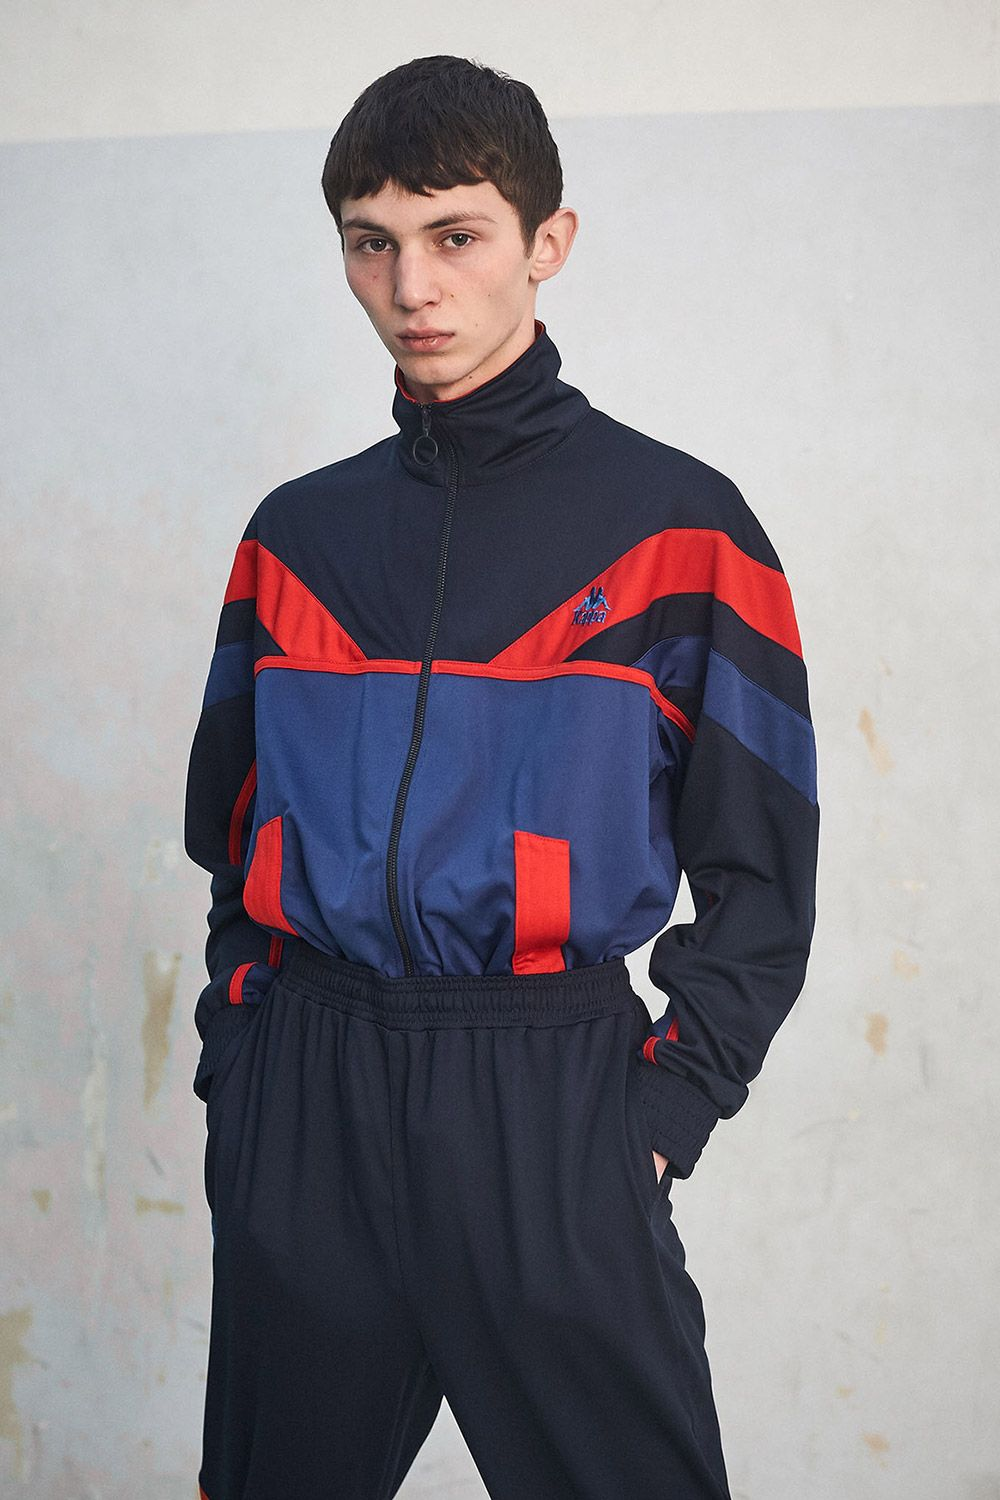 25baecdf111 Kappa Kontroll's Fall Collection Is Tracksuits Galore | Schmött ...